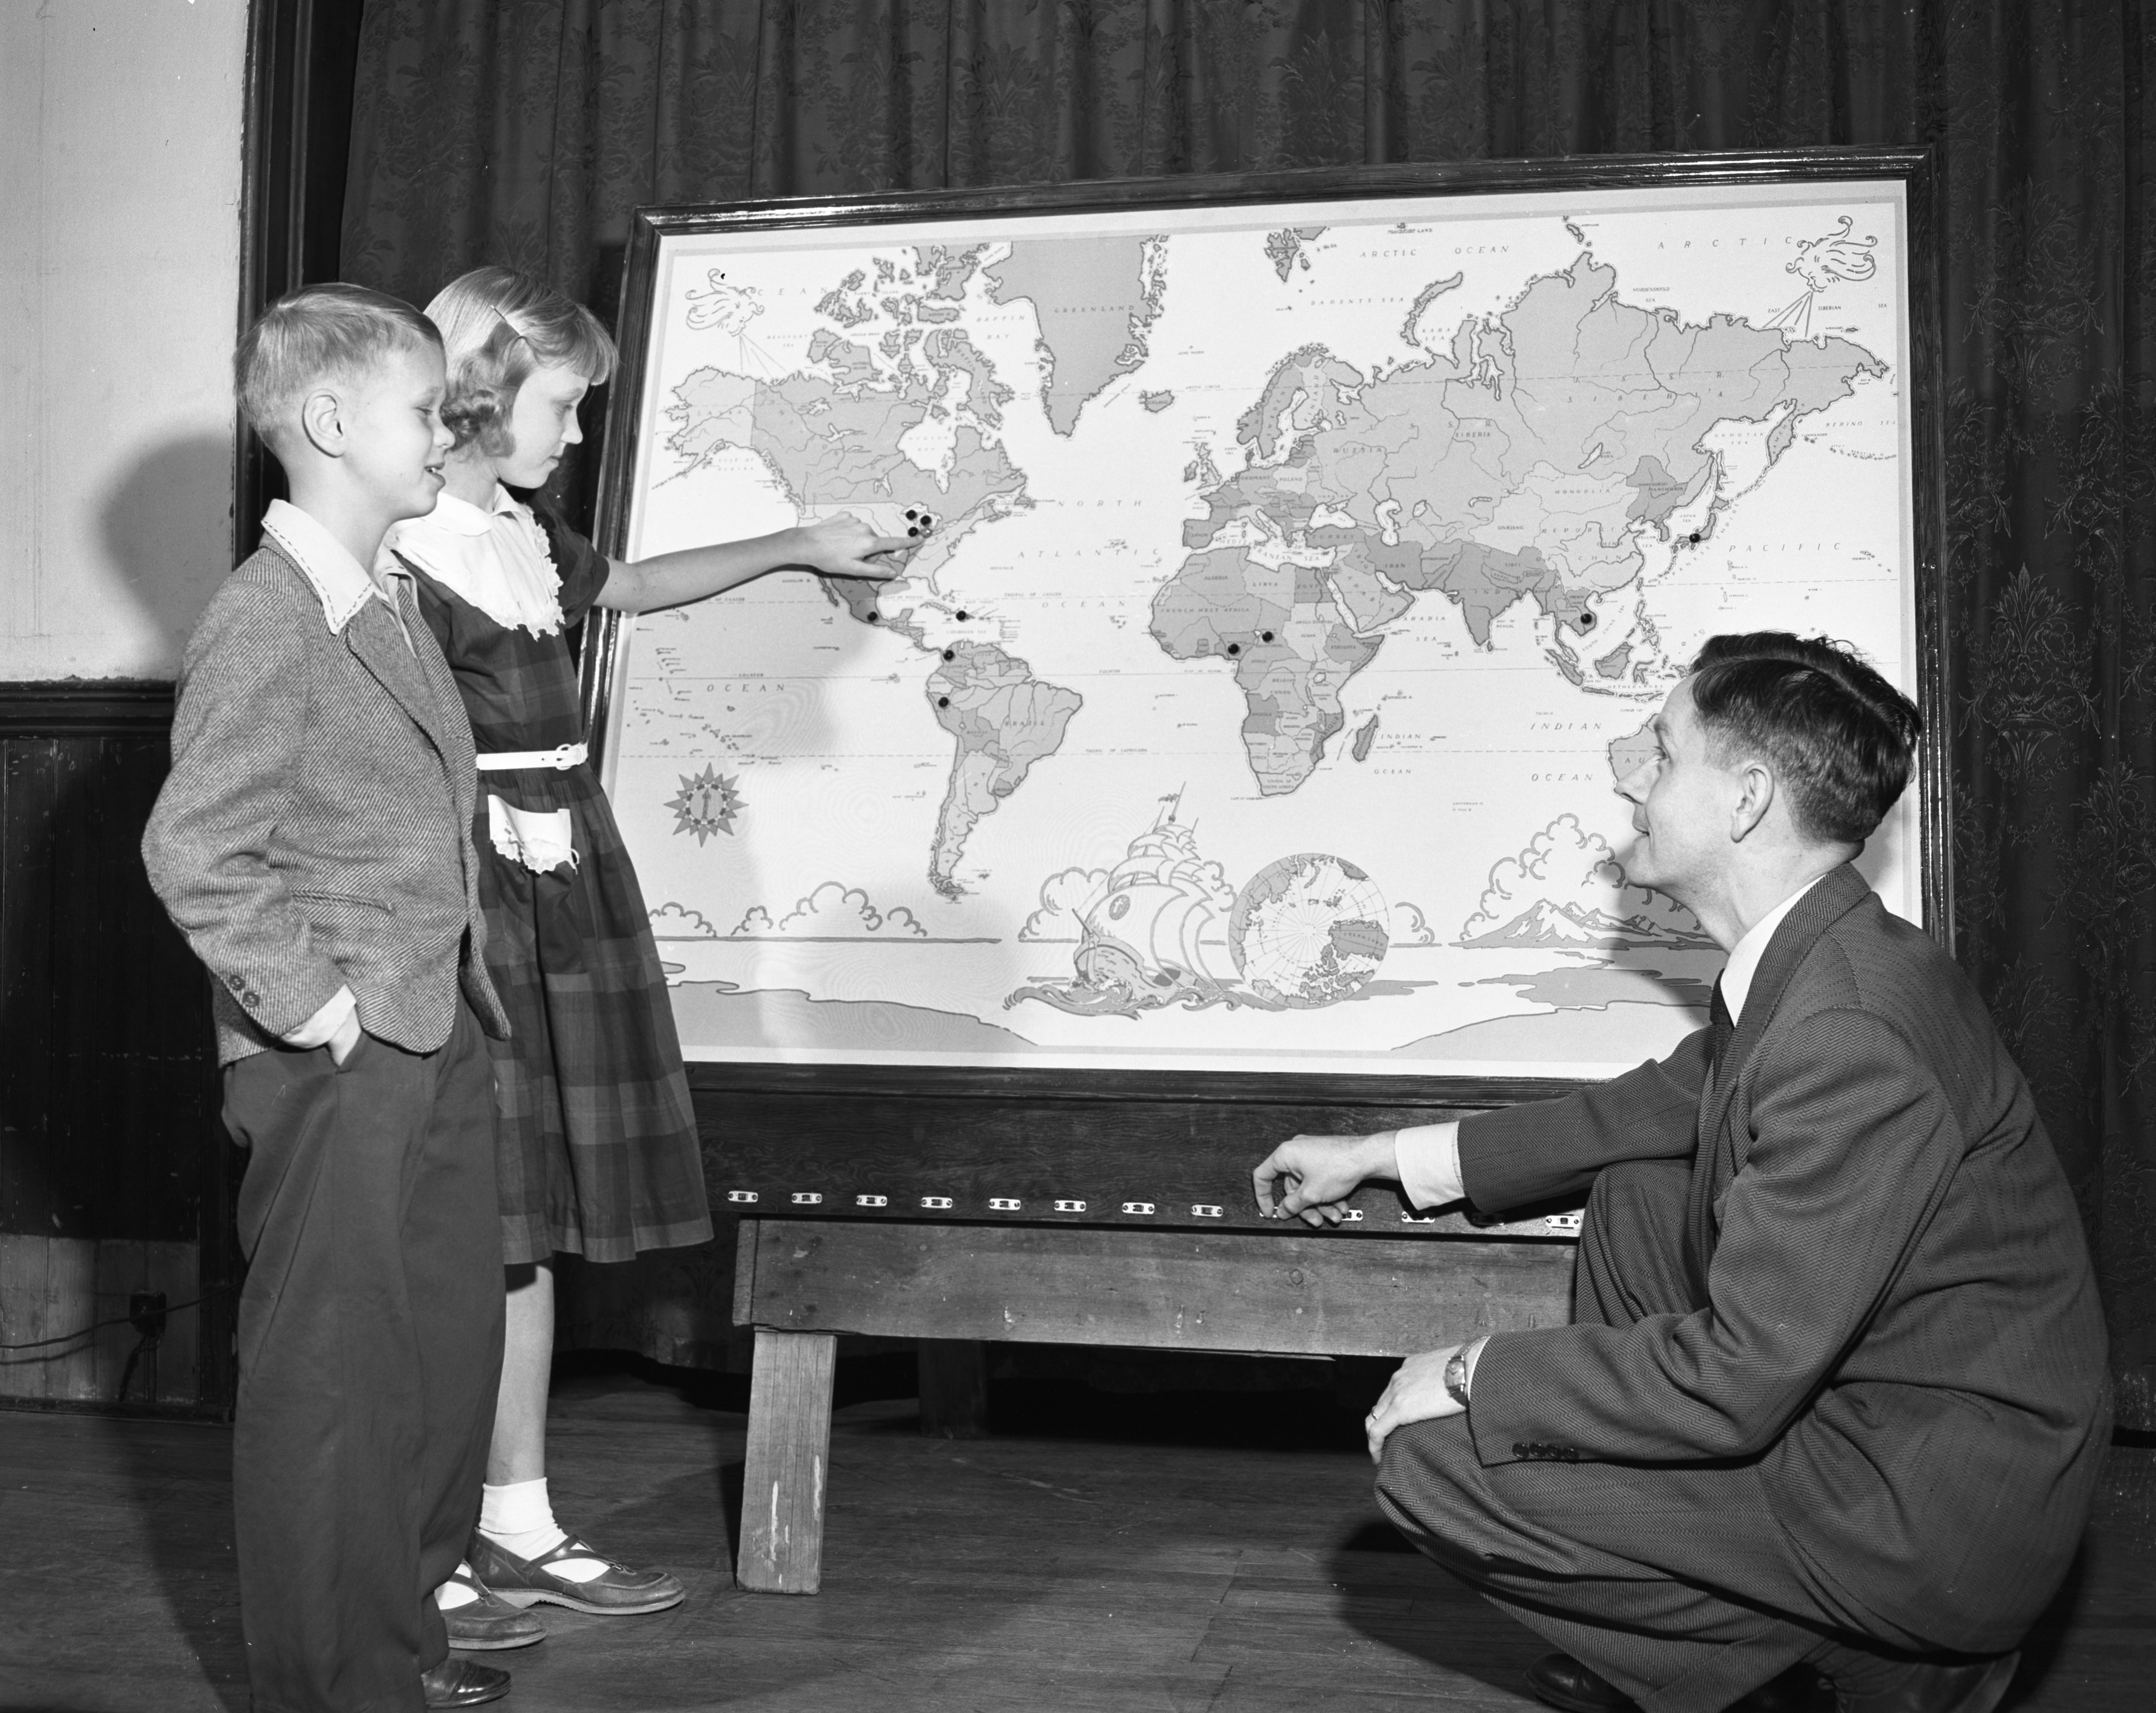 Electrical Map at Grace Bible School and Church, November 1951 image